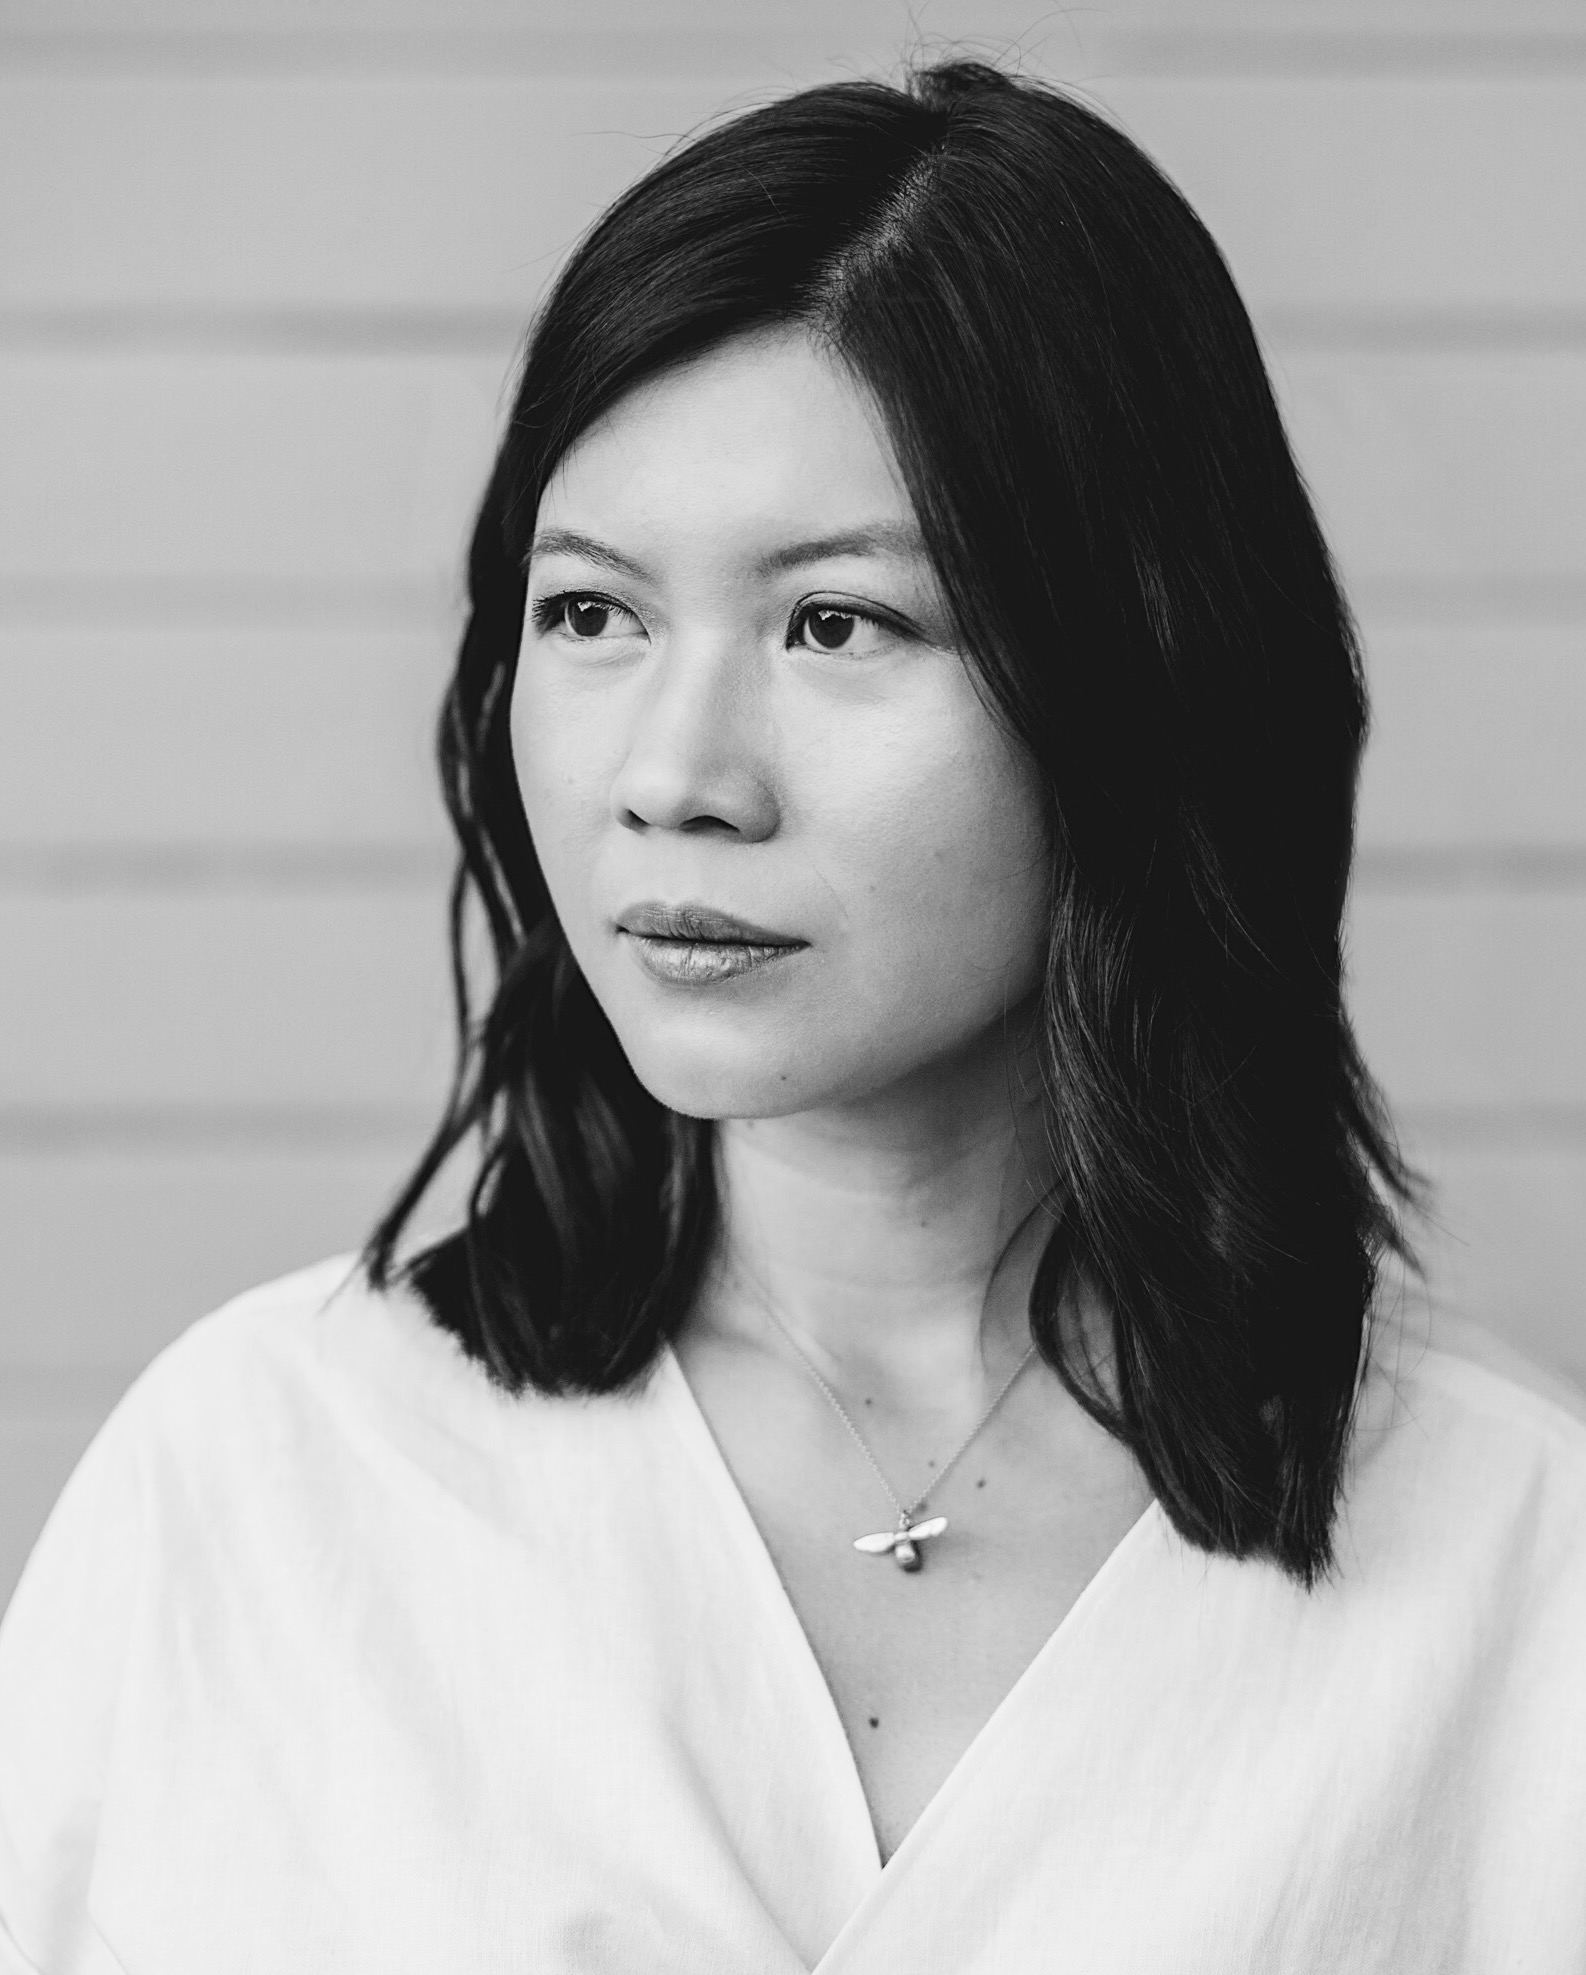 Rachel Heng  is the author of  Suicide Club  (Henry Holt, 2018), which was featured as a best summer read by outlets such as The Irish Times, The Independent, ELLE, Gizmodo, NYLON, Bustle, Bitch Media and will be translated in ten languages worldwide. Her short fiction has received a Pushcart Prize Special Mention and  Prairie Schooner 's Jane Geske Award, and has been published in  Glimmer Train ,  Tin House ,  Kenyon Review  and elsewhere. Her non-fiction has been published in outlets such as  The Telegraph ,  Grazia ,  Lit Hub  and  The Rumpus . Rachel is currently a James A. Michener Fellow at the Michener Center for Writers, UT Austin.